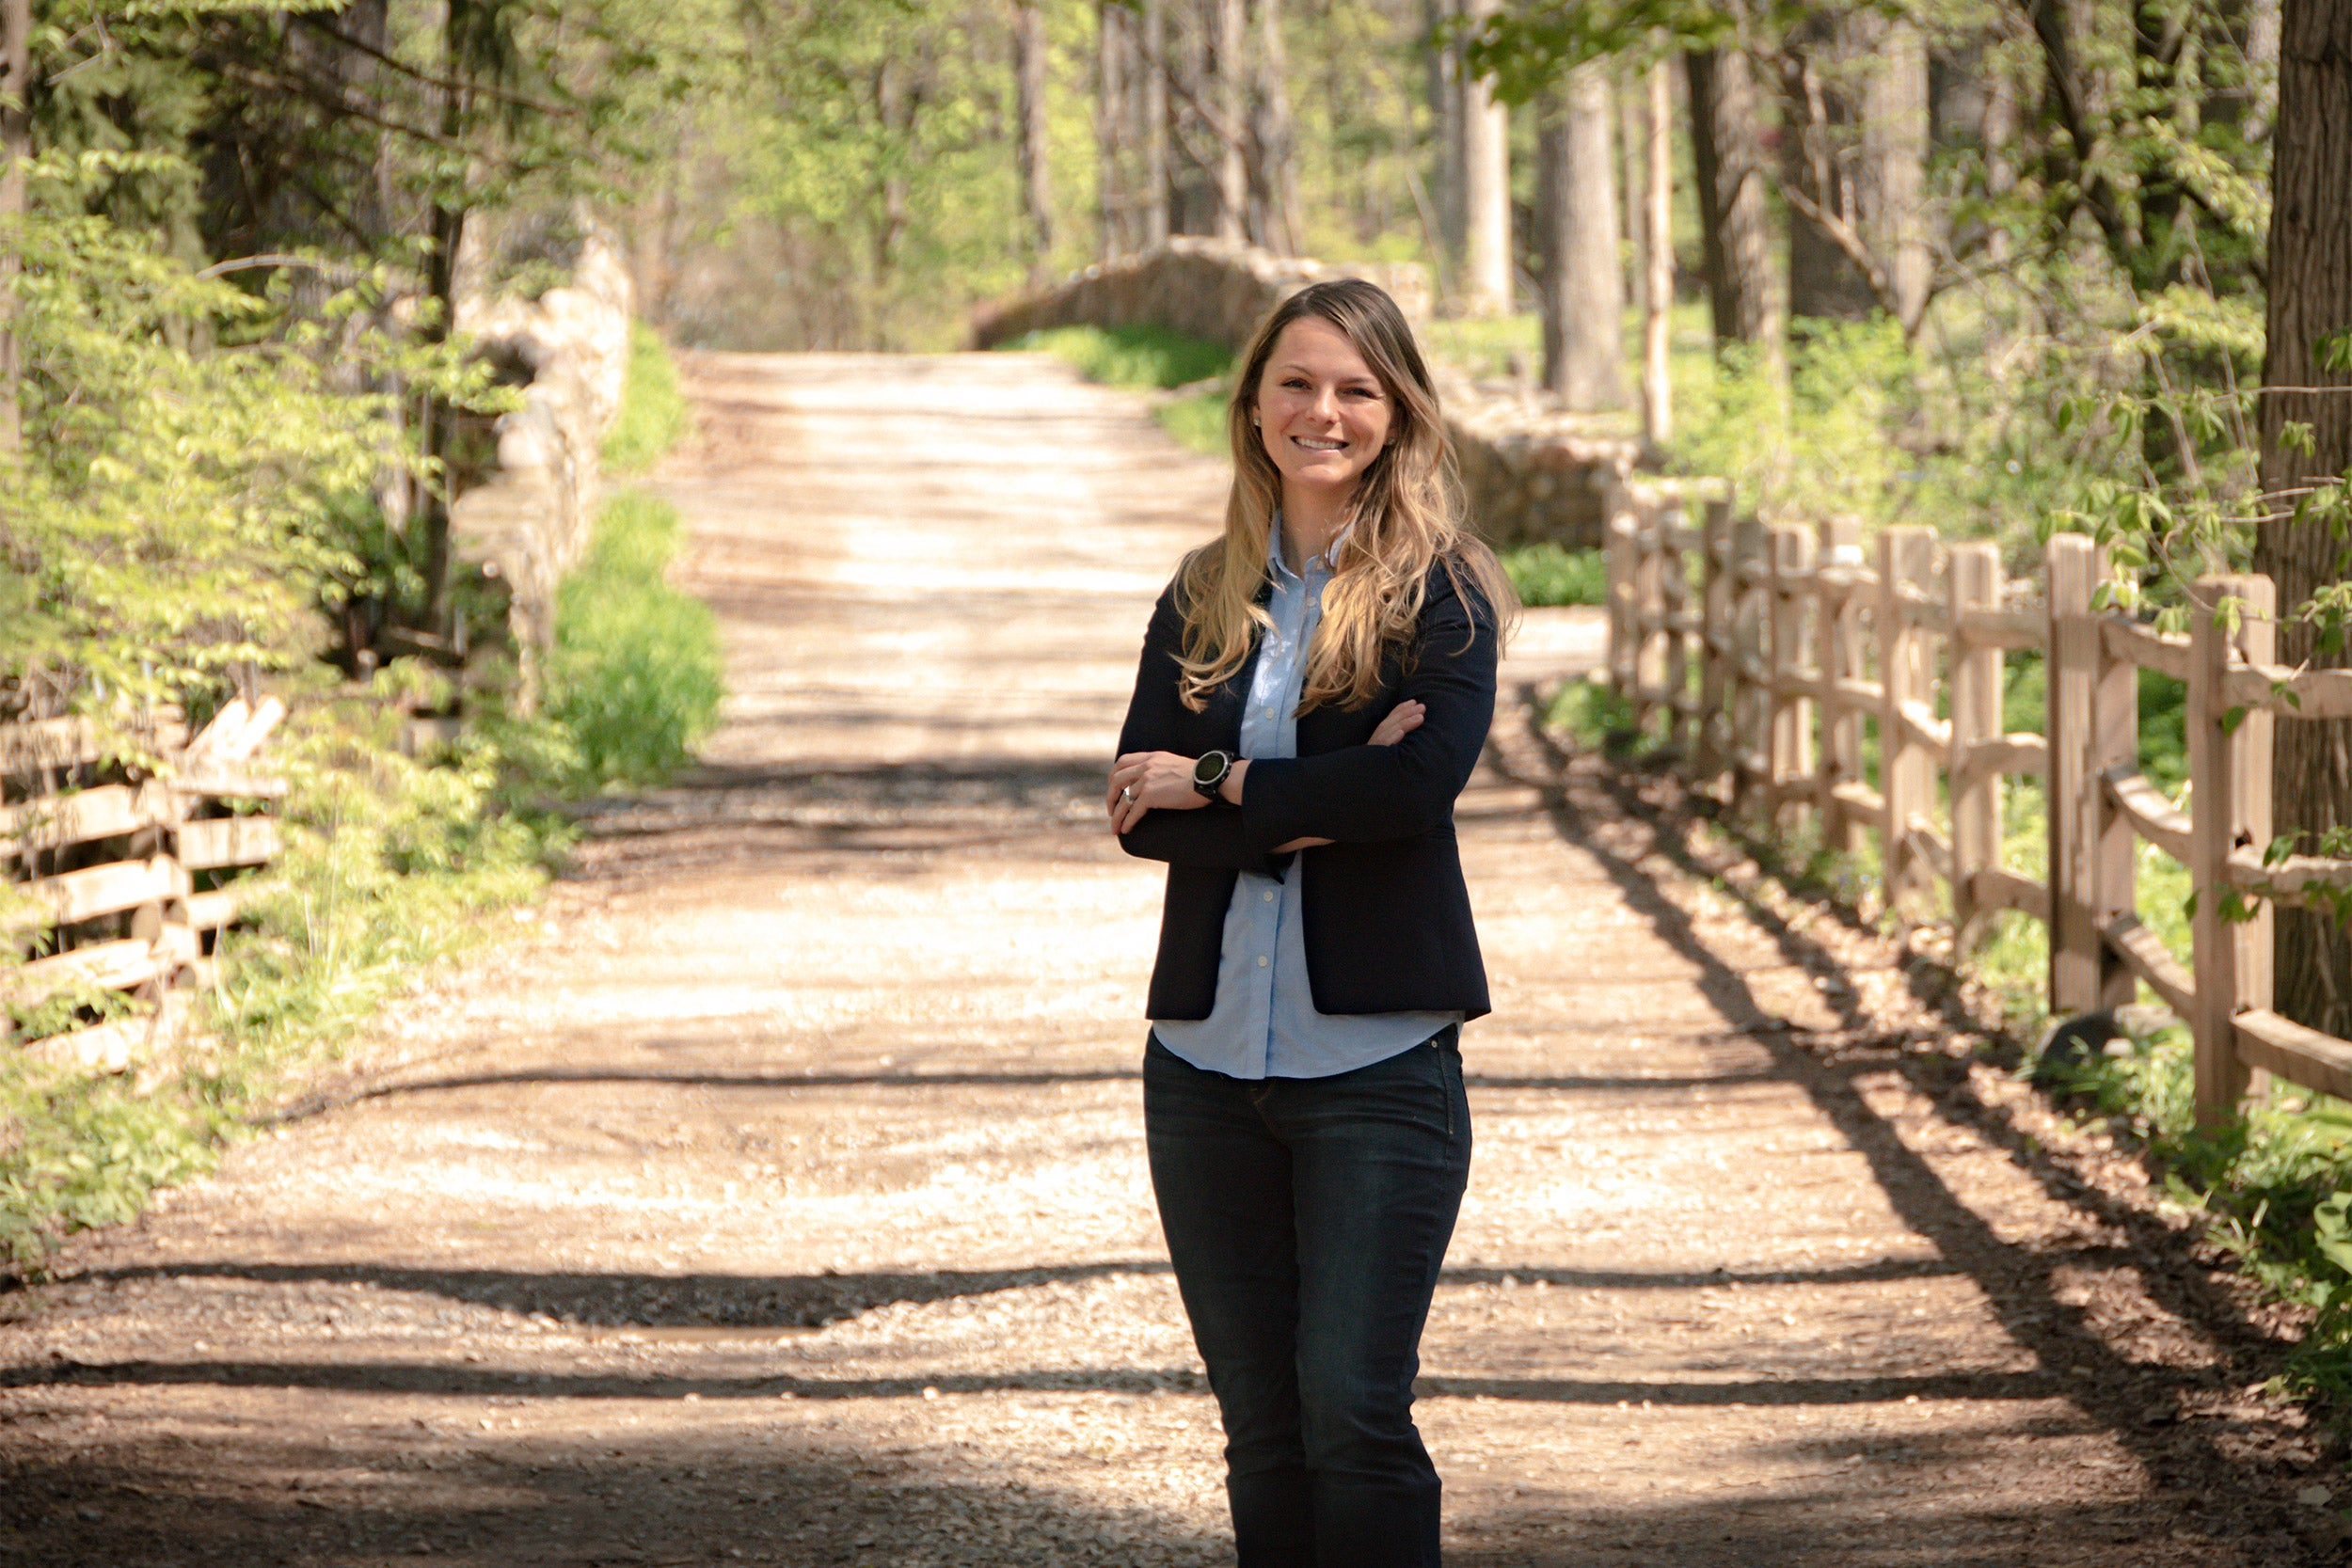 Kirstin Woody Scott on dirt road.